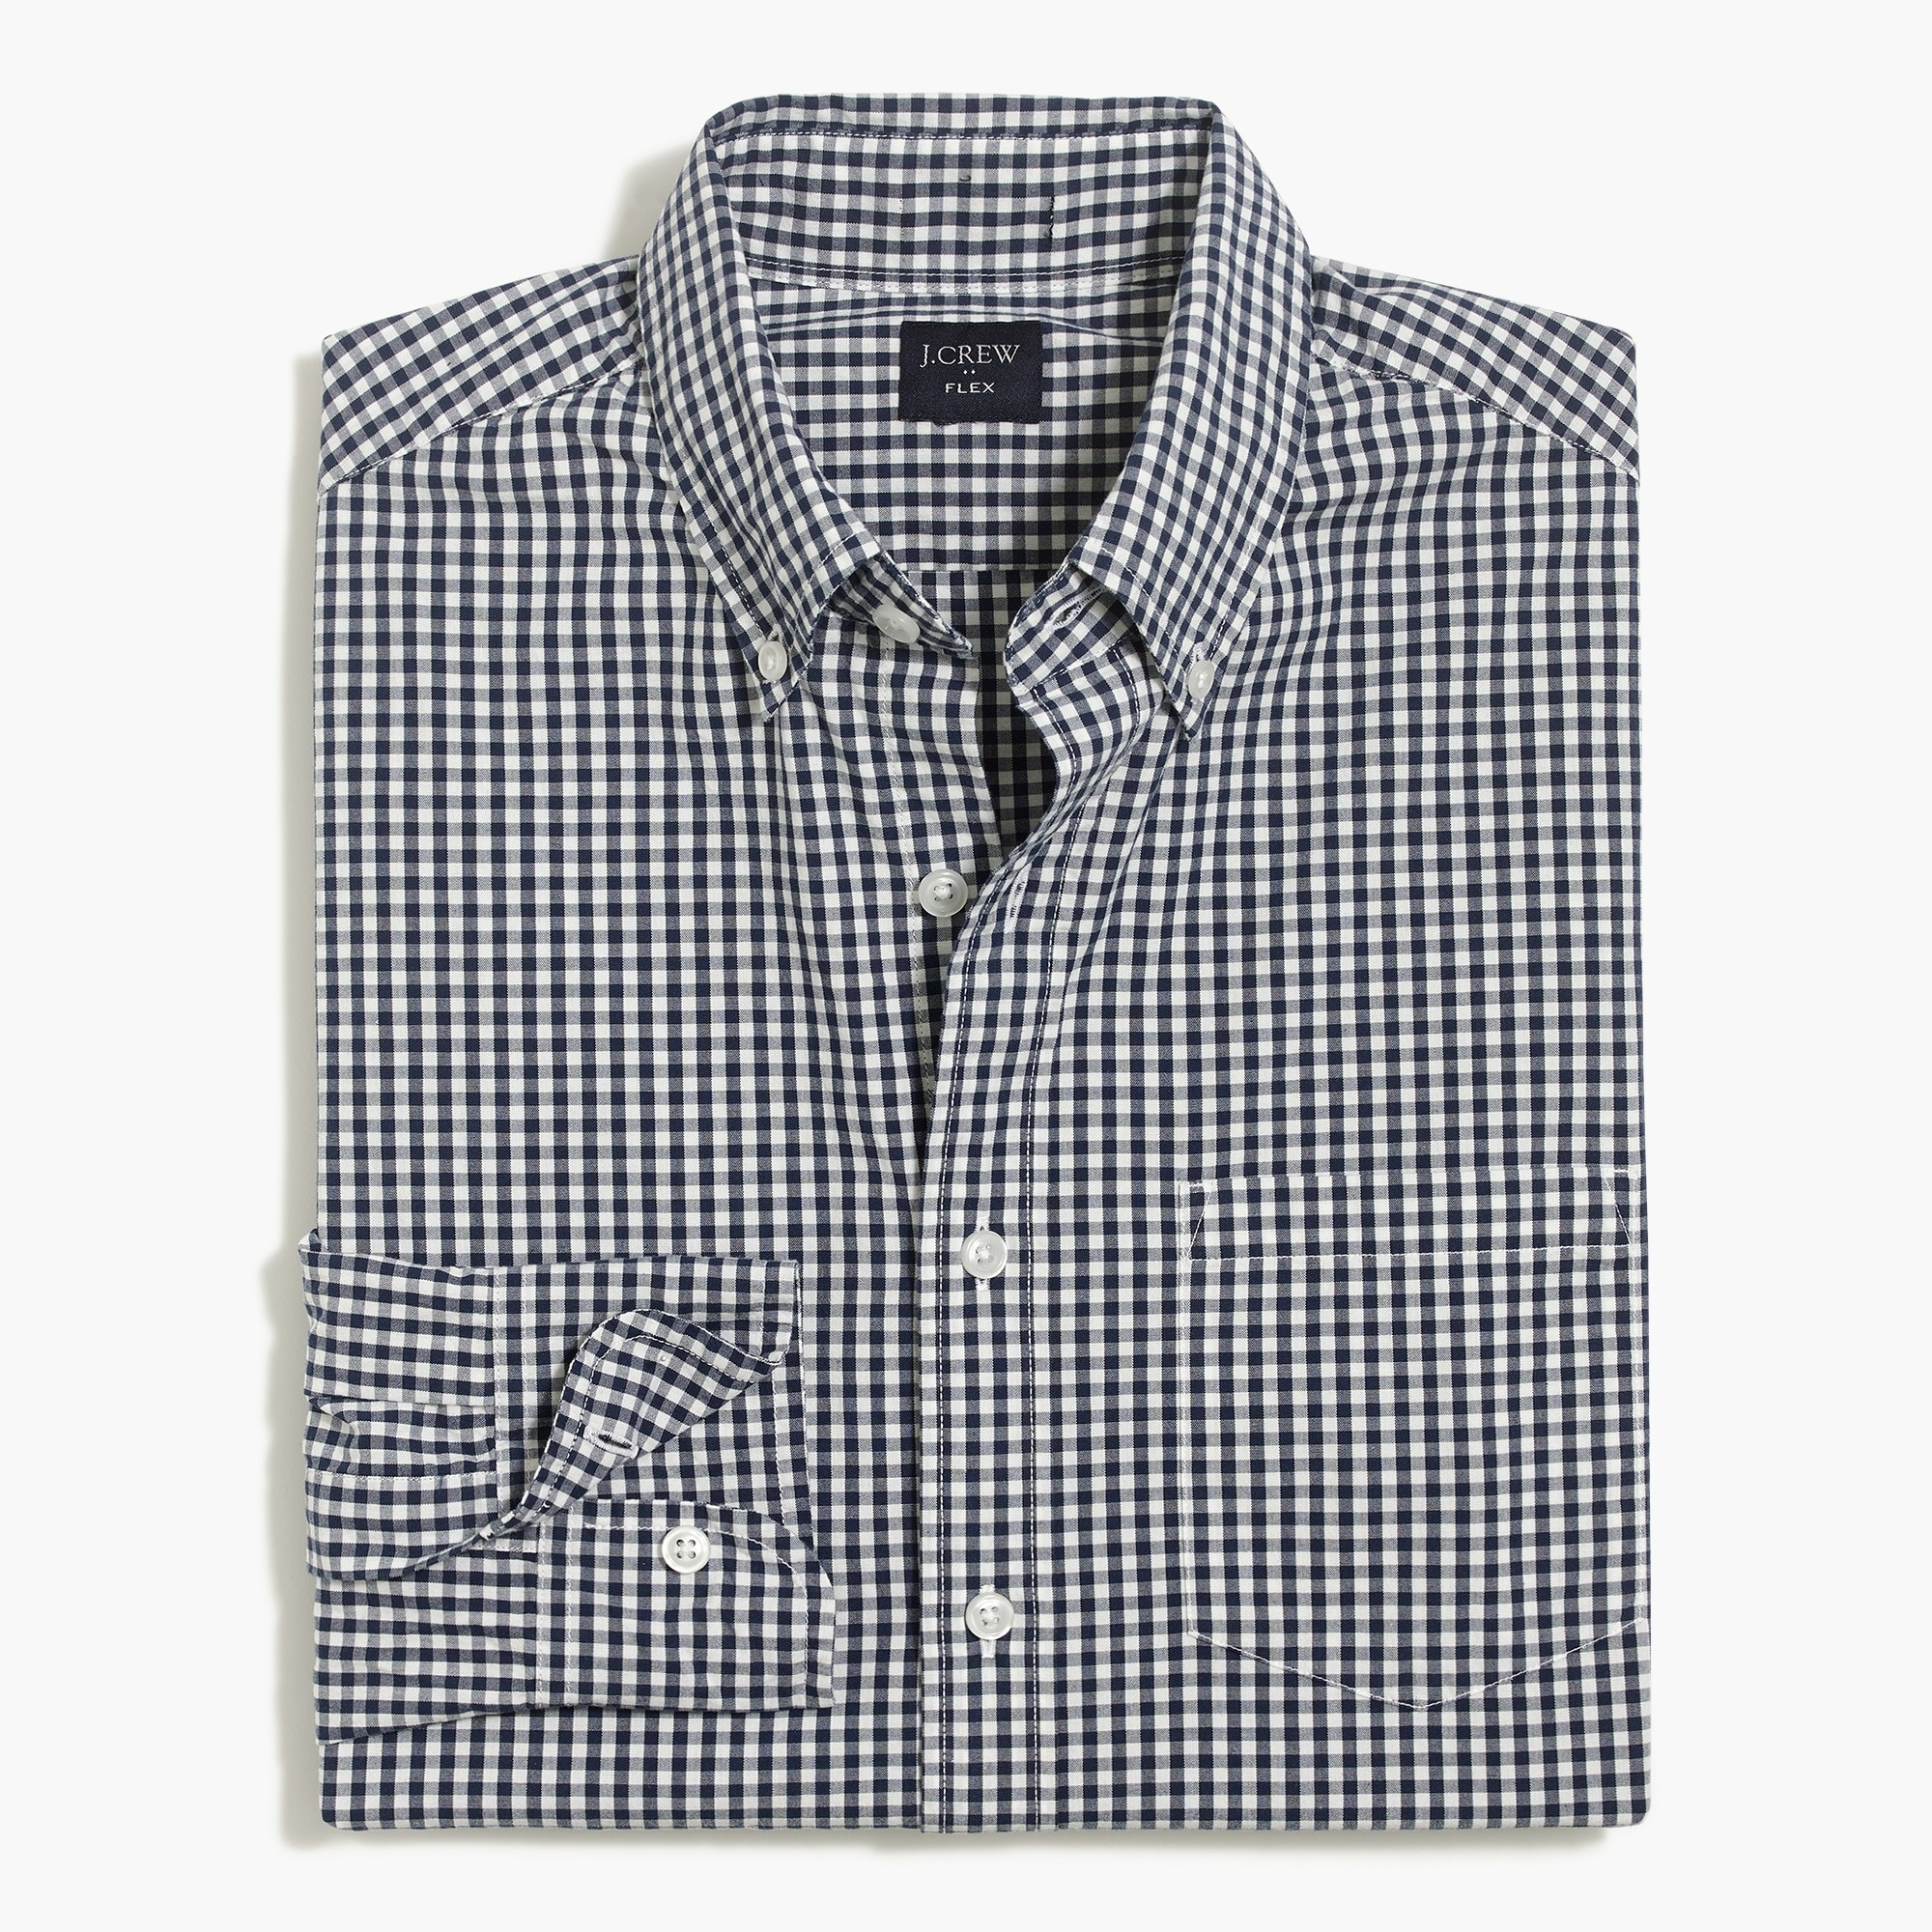 factory mens Untucked flex washed shirt in small gingham